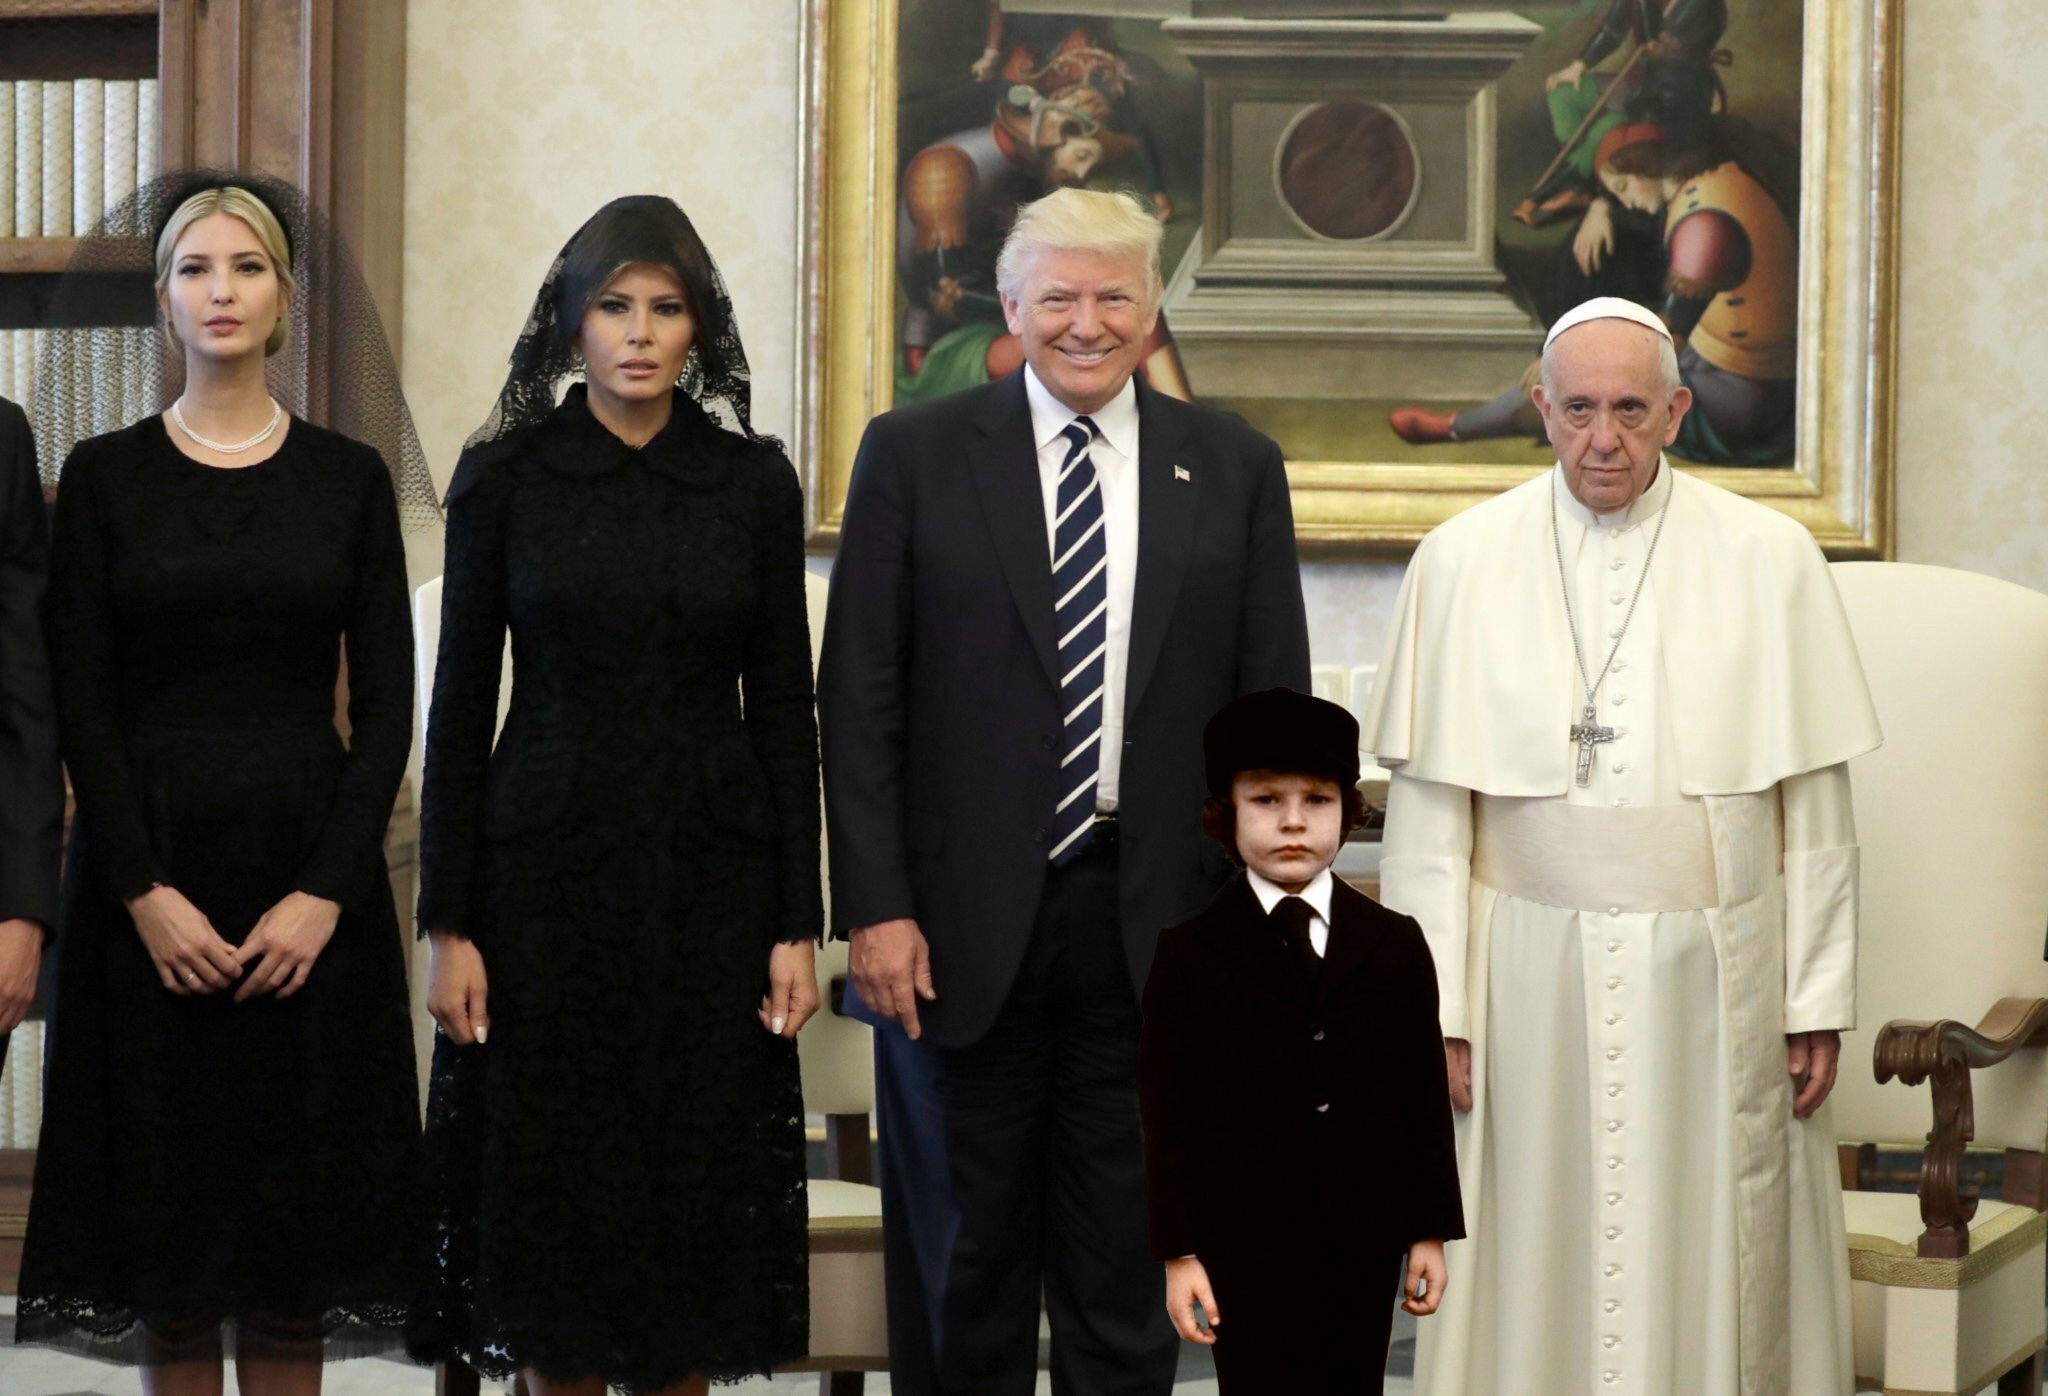 I photoshopped in the kid from THE OMEN and it's so perfect it's unnerving. https://t.co/I3wGIrbvBW